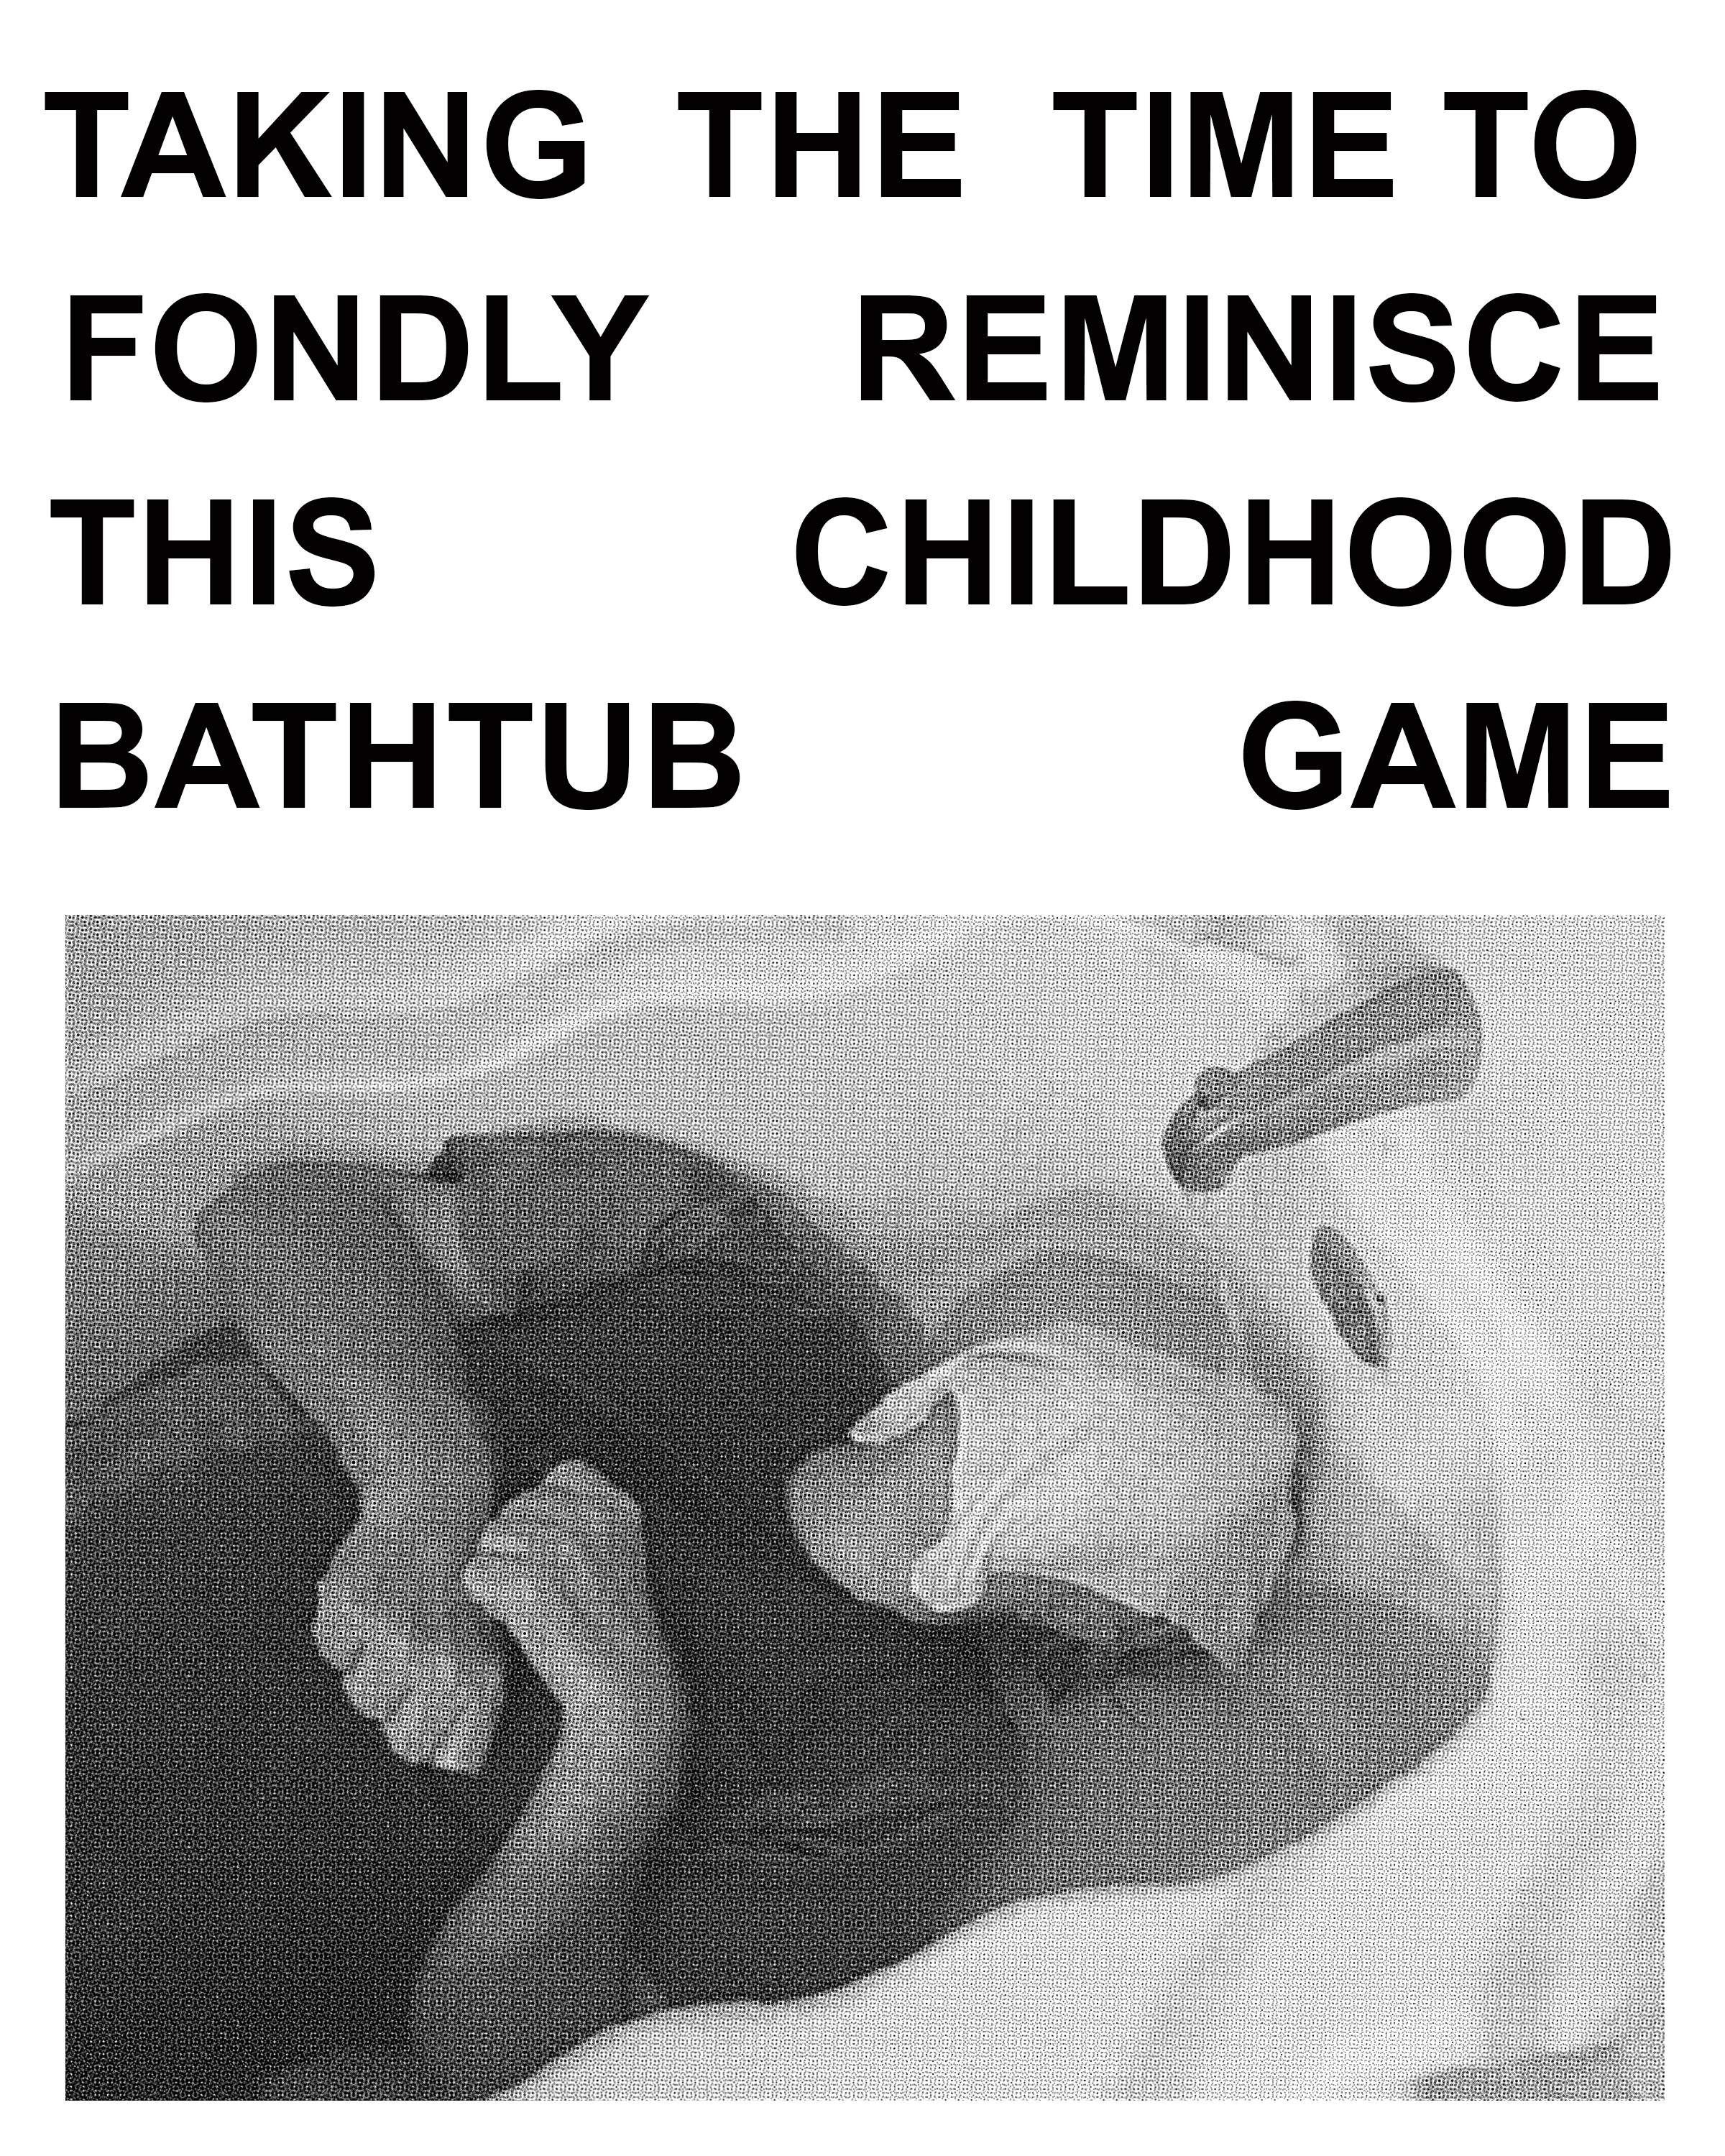 watertub.jpg